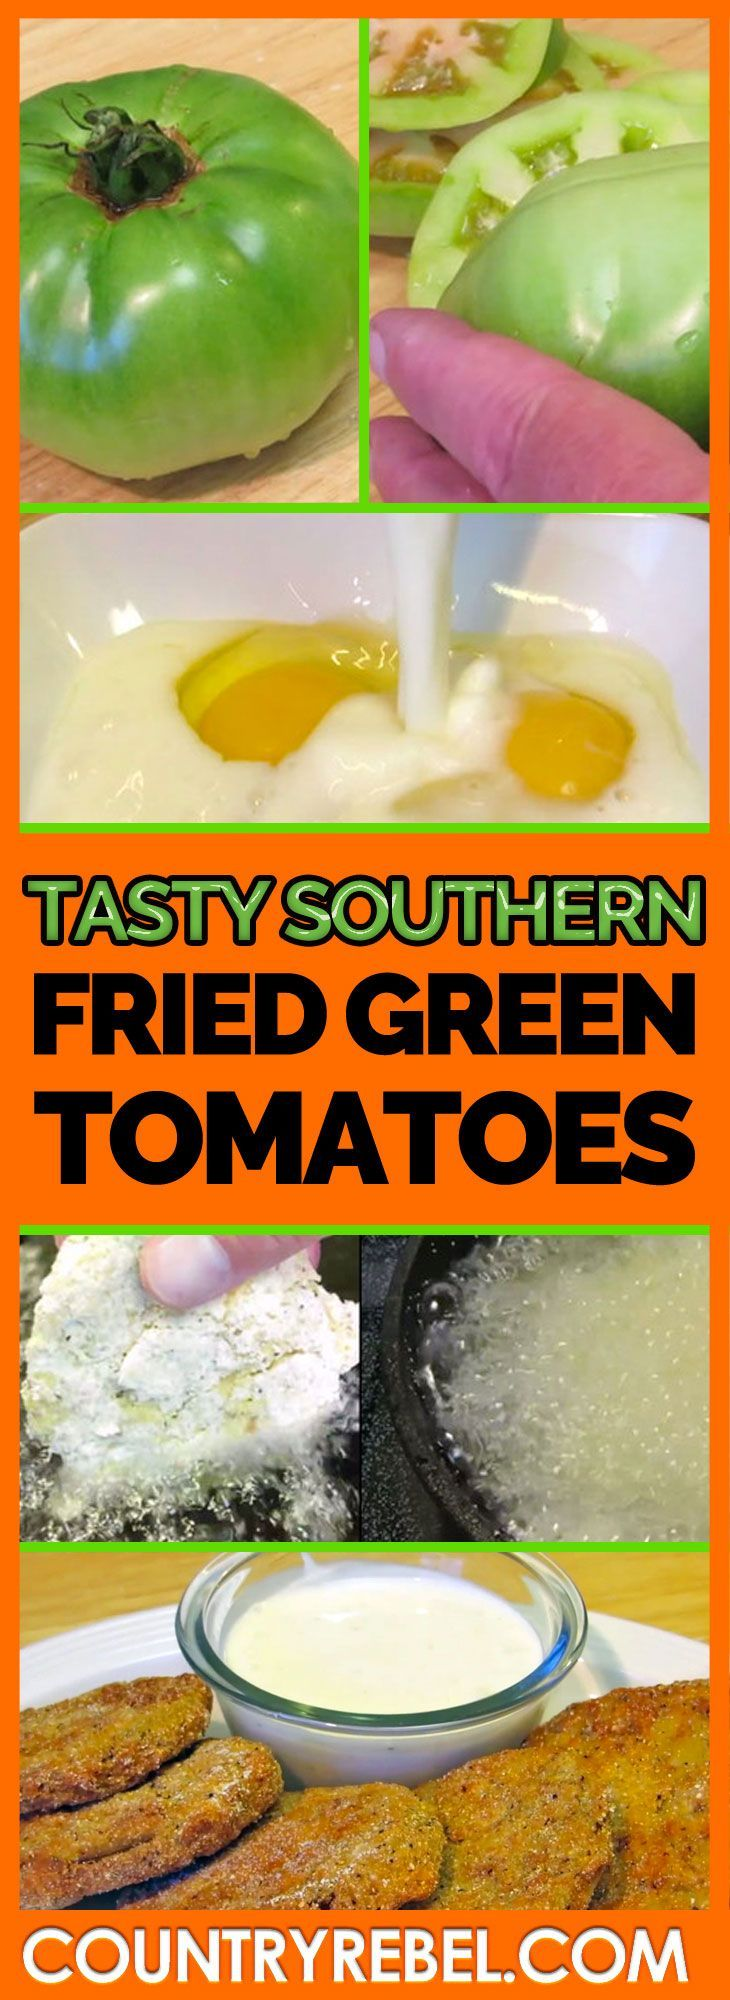 black  WATCH  Green This Try      and DIY  Recipes  To volt Green Fried Southern Fried Tasty Tomatoes Y     all Green Tomato free run Tomatoes Green Recipe  Need Tomato